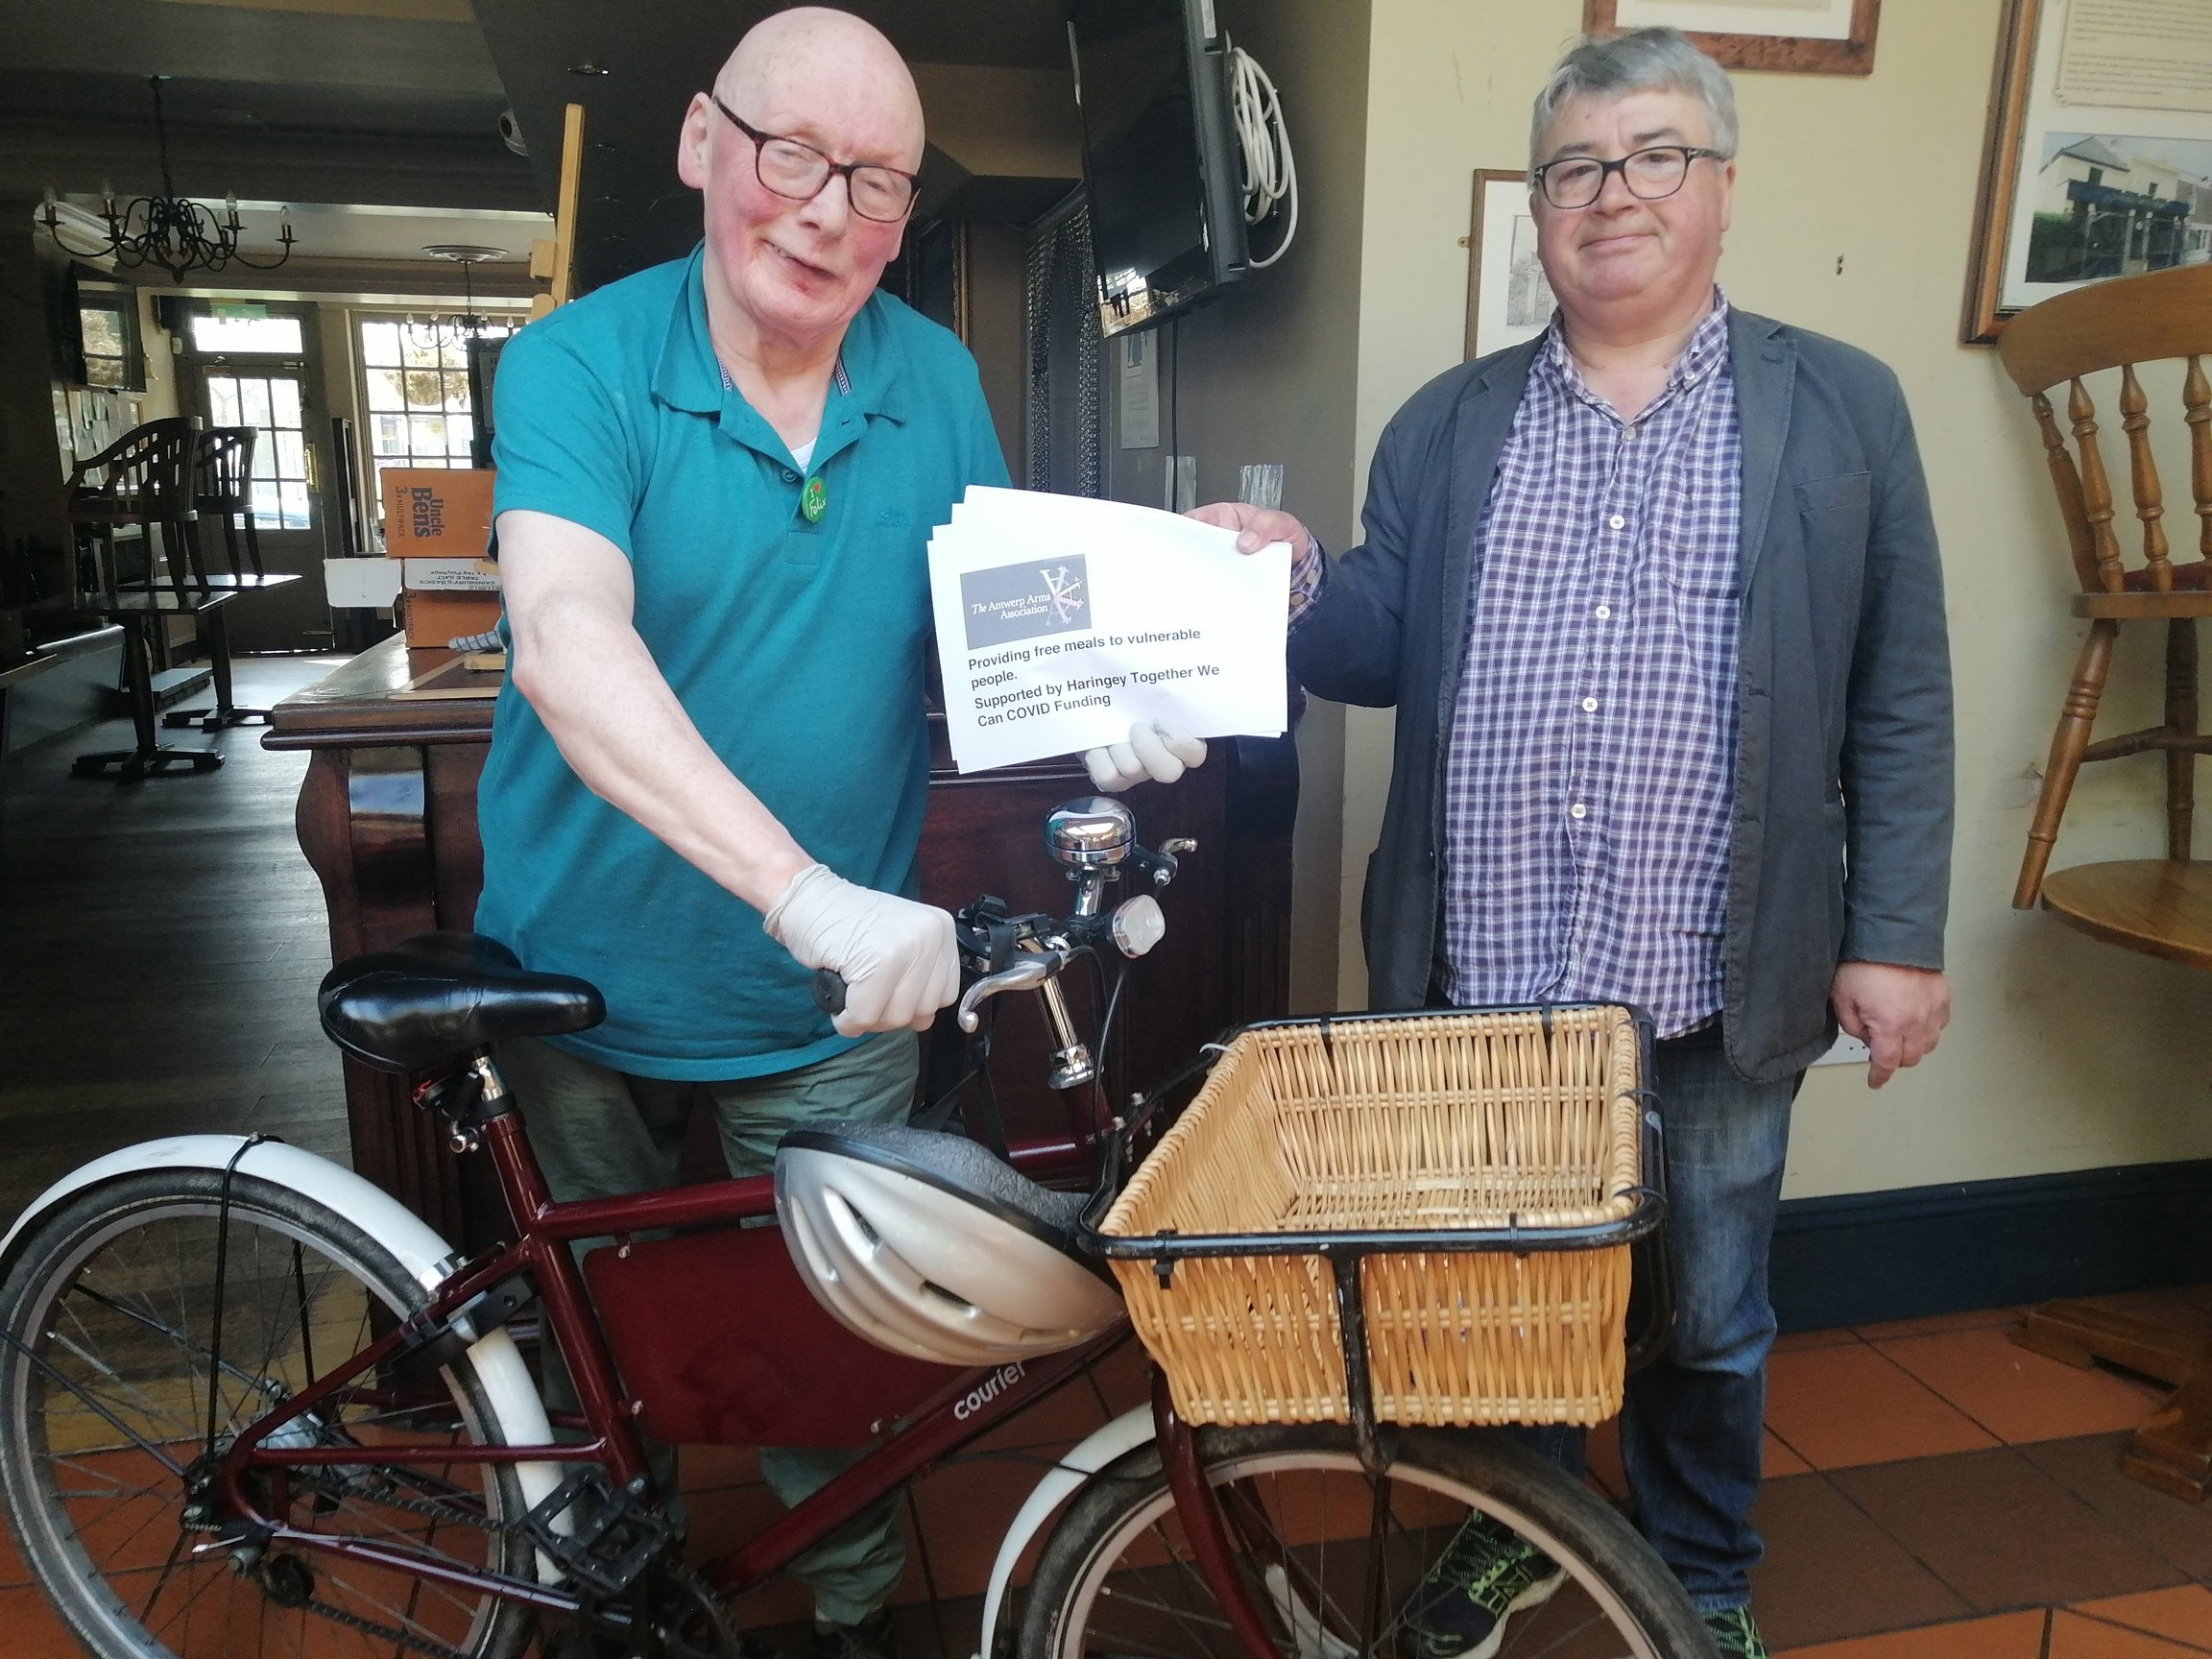 Food delivery volunteer with bicycle ready to distribute meals ot vulnerable people